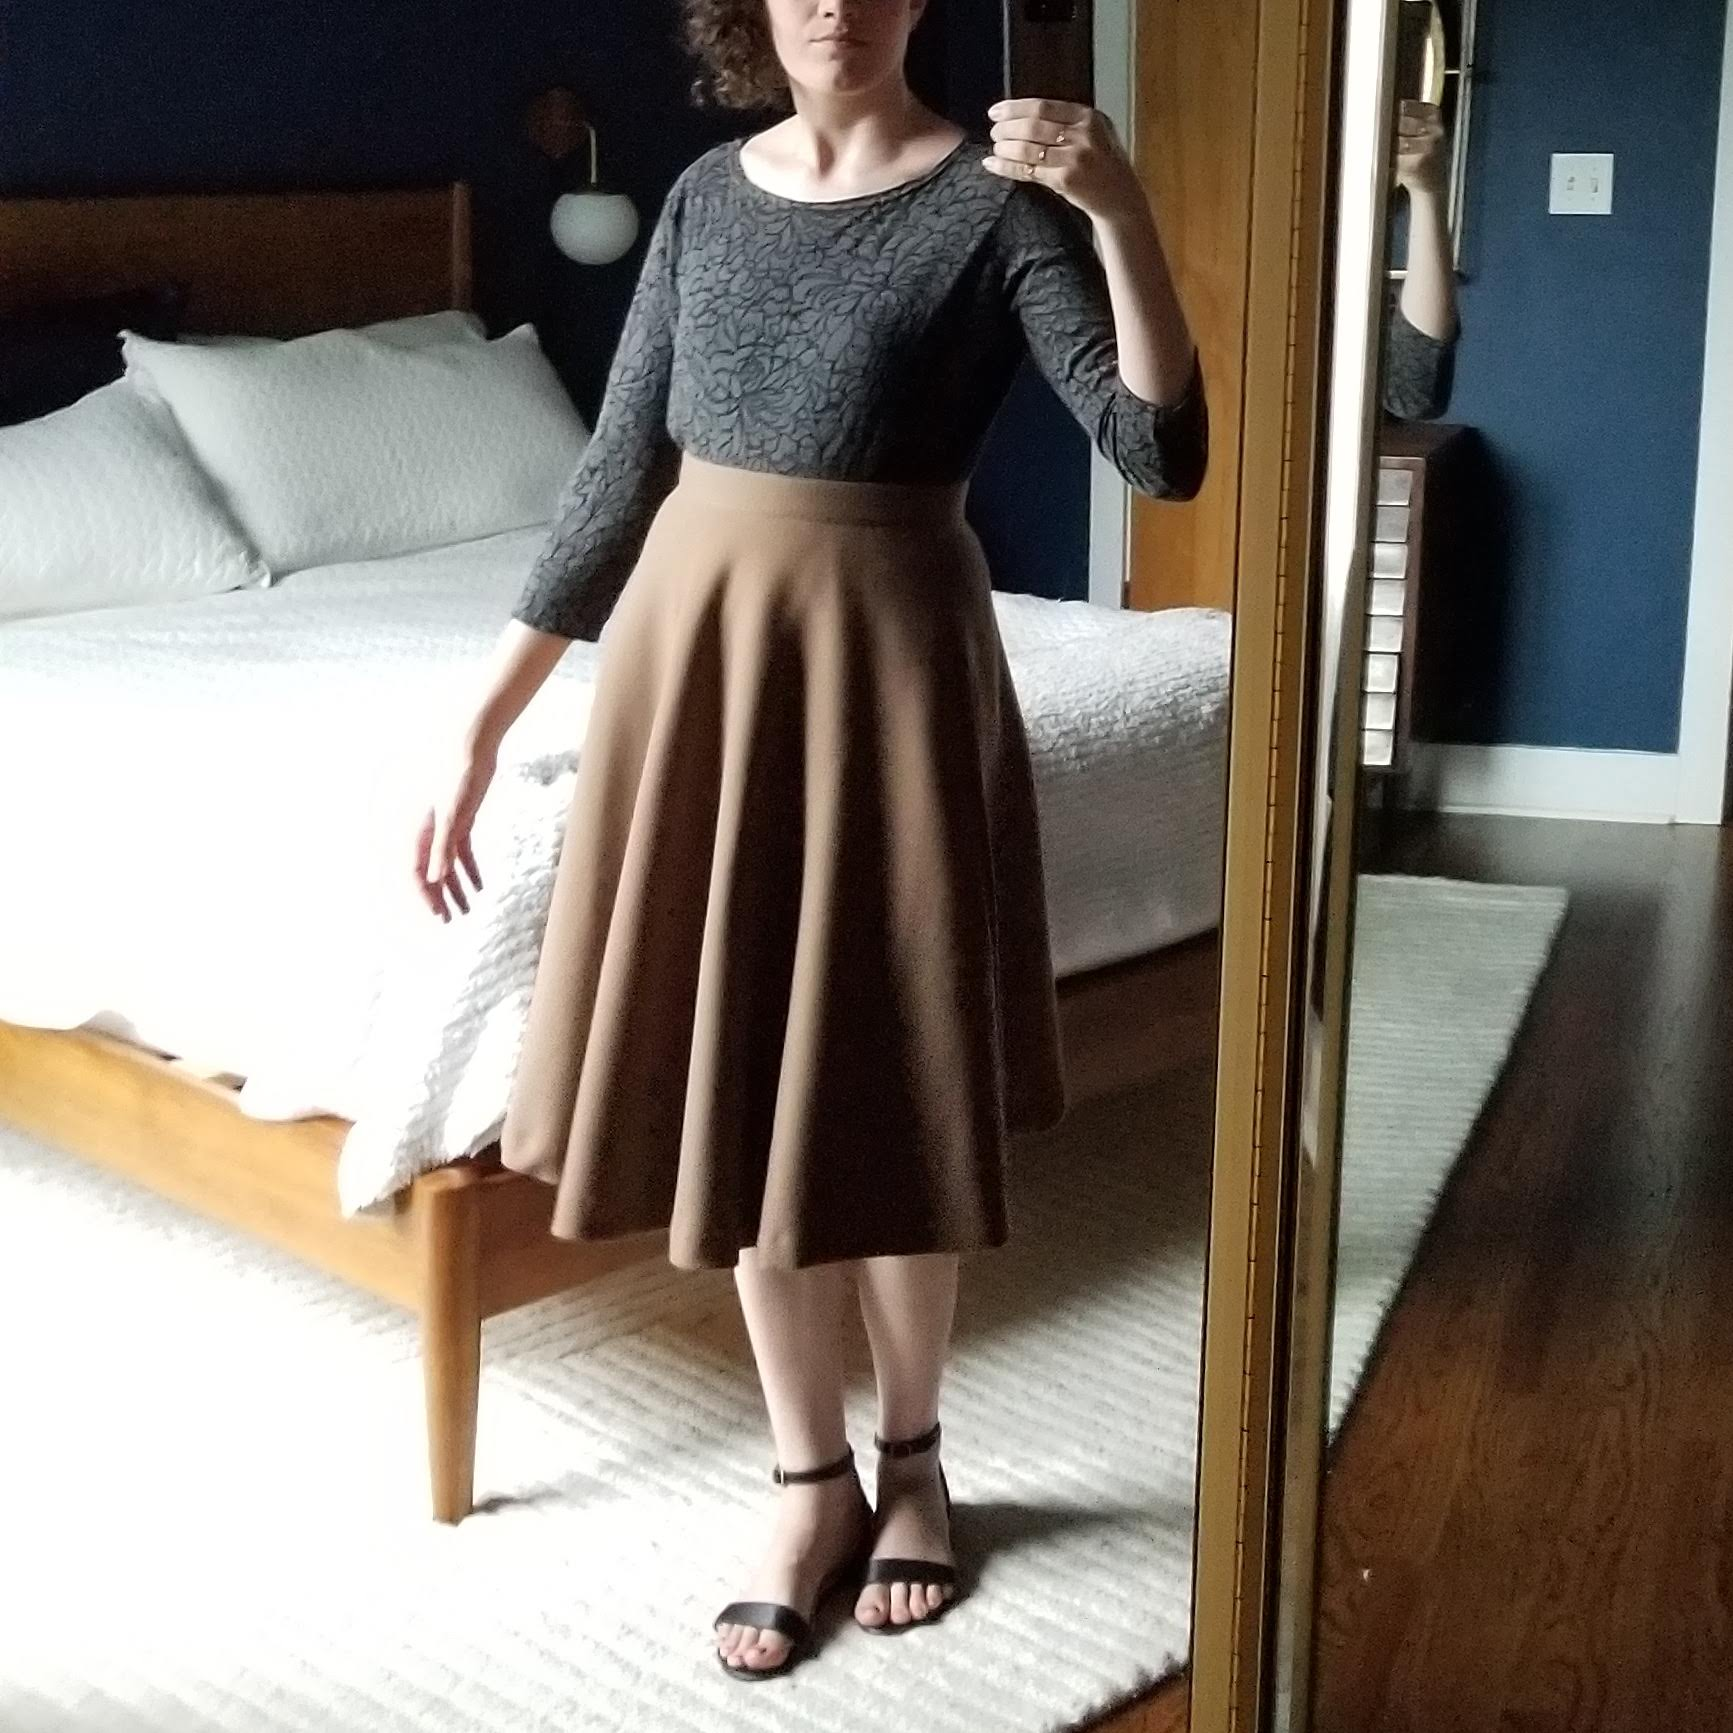 Wednesday - May 23, 2018I really like this 3/4 sleeve tee my aunt-in-law gave me a few years ago. It's got a burnout pattern that makes up the floral pattern. It's barely fitted and tucks in well to a bottom. This skirt is one of the last things I ever bought from Modcloth before I decided they didn't fit my style anymore. It's fully lined and has pockets, which is really nice.Shirt / Loft (1H)Skirt / Modcloth (1H)Shoes / Nisolo (2H)